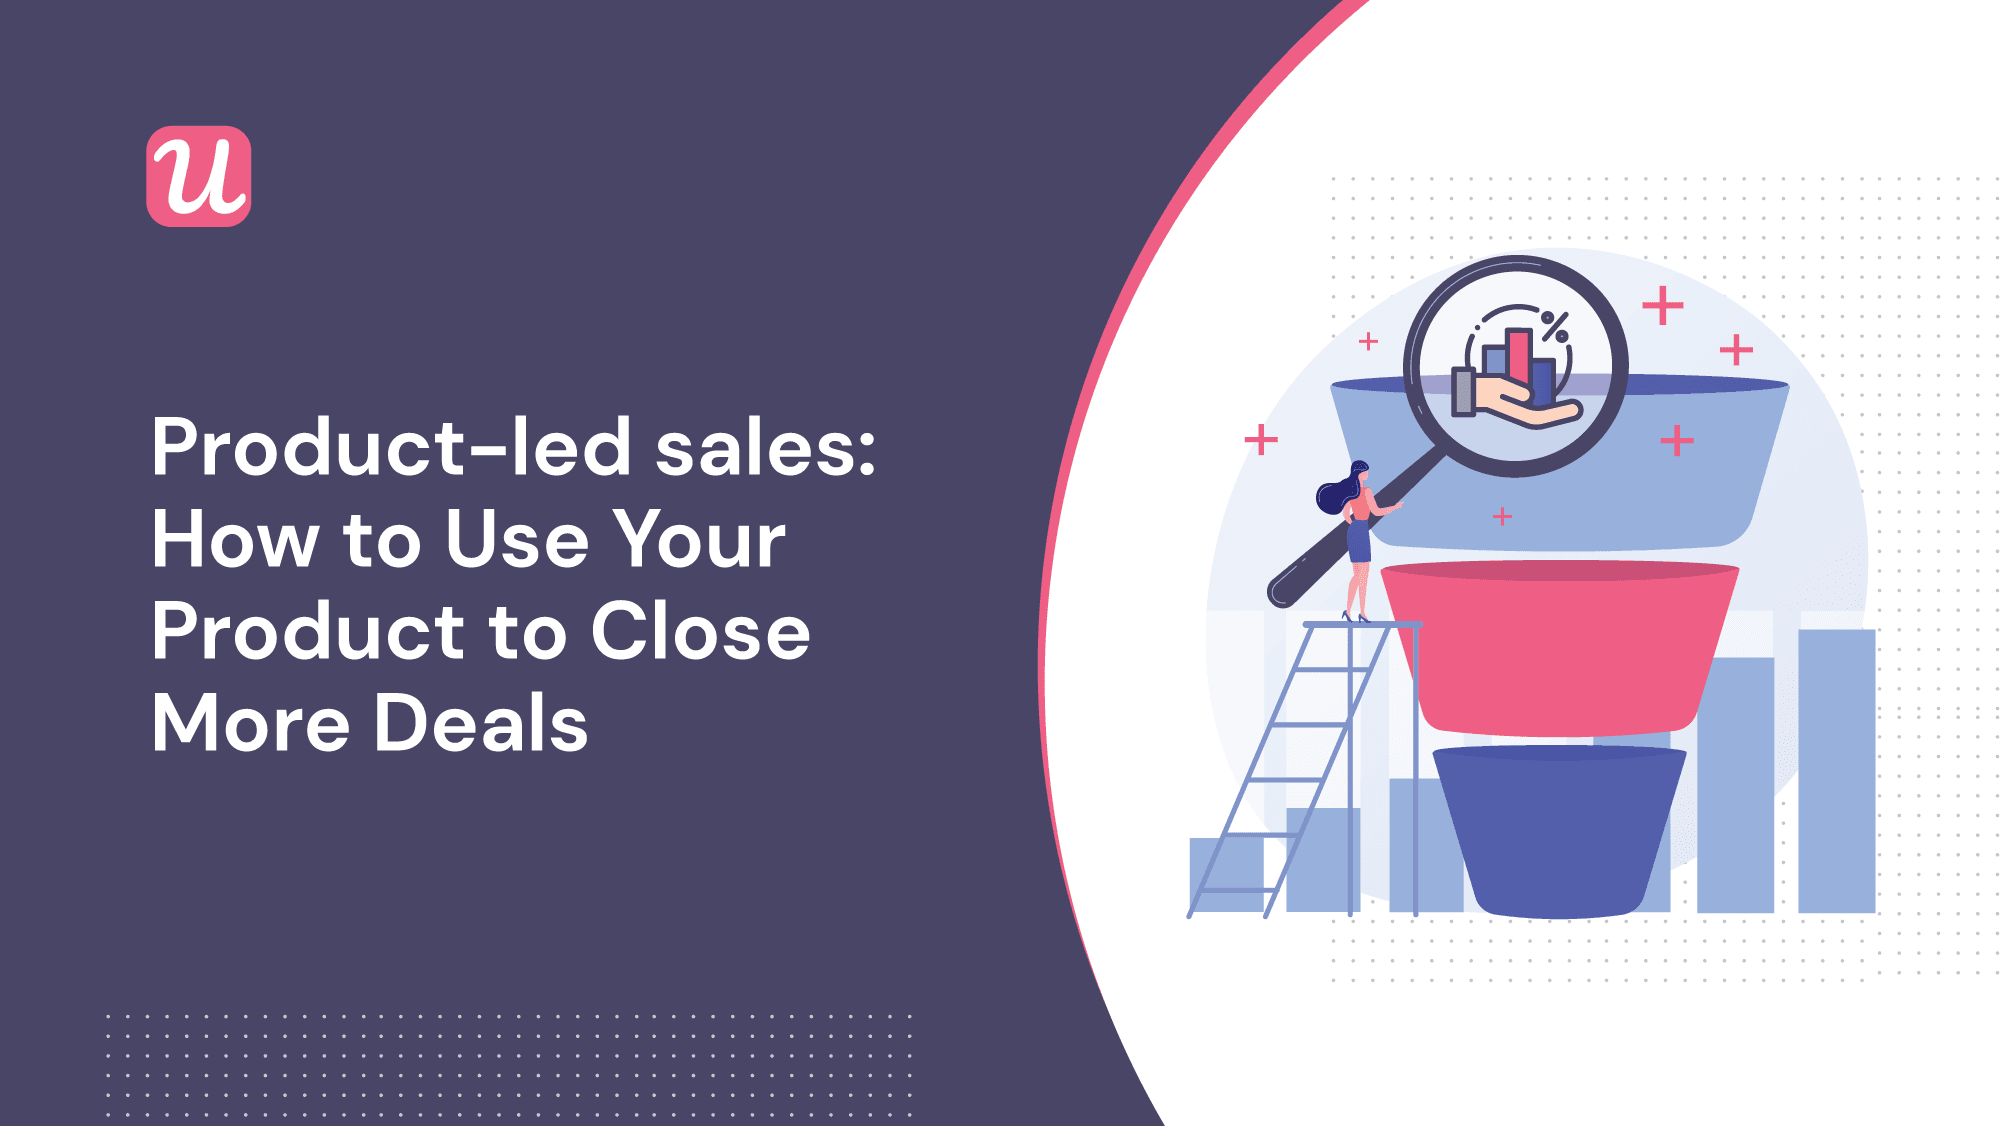 Product-Led Sales: How to Use Your Product to Close More Deals